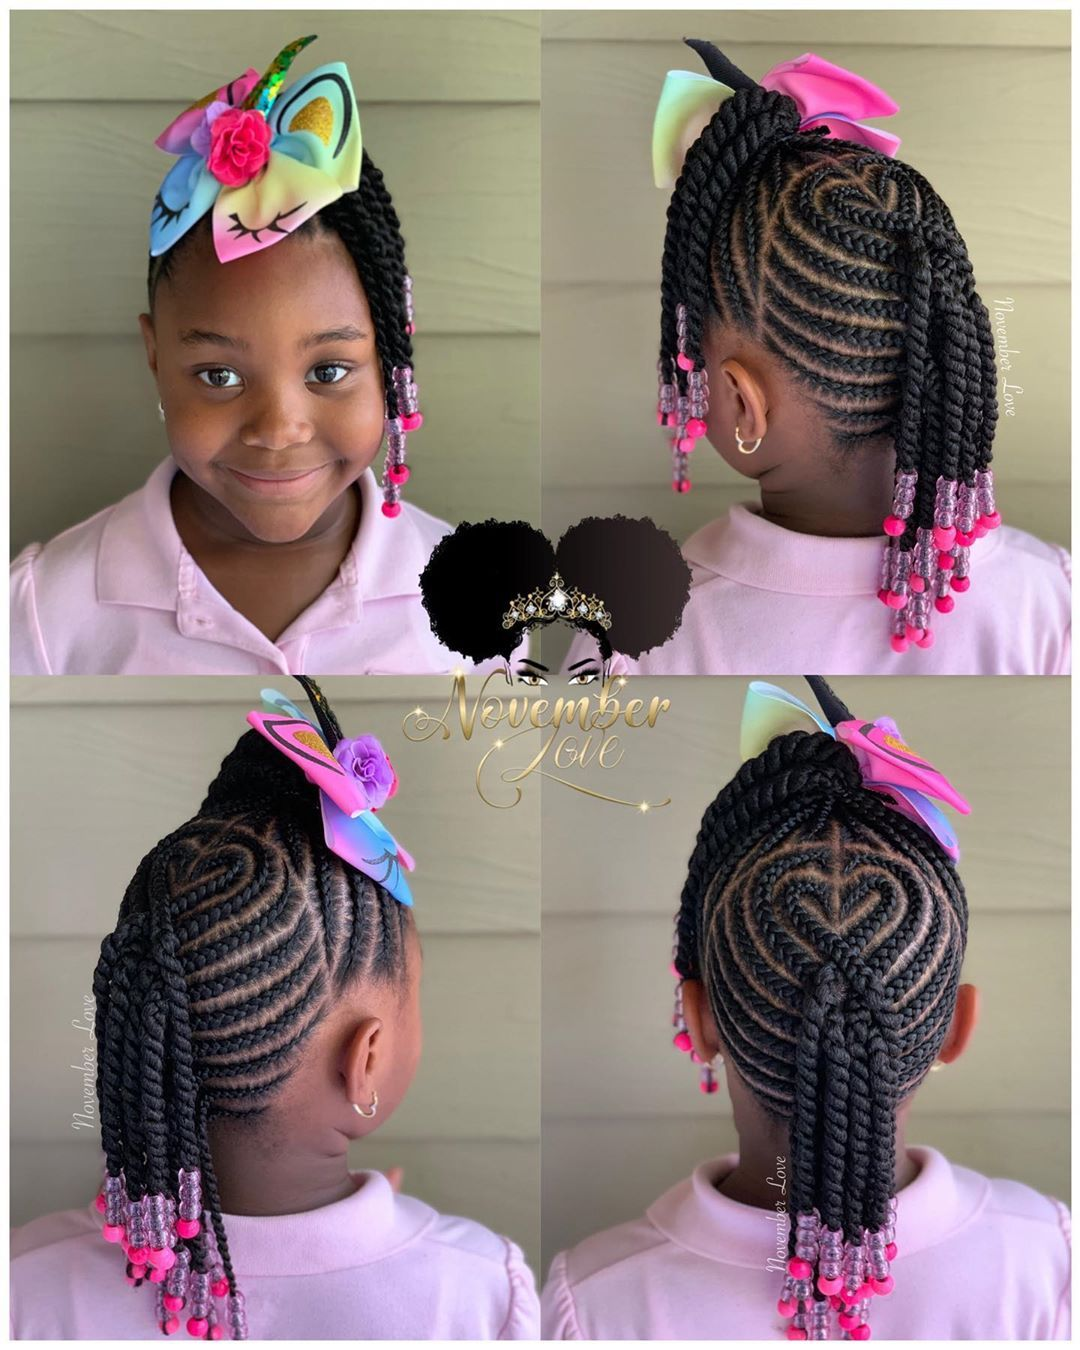 Children S Braids And Beads Booking Link In Bio Childrenhairstyles Braidart Childrensbraids Braid Braids For Kids Kids Braided Hairstyles Kids Hairstyles